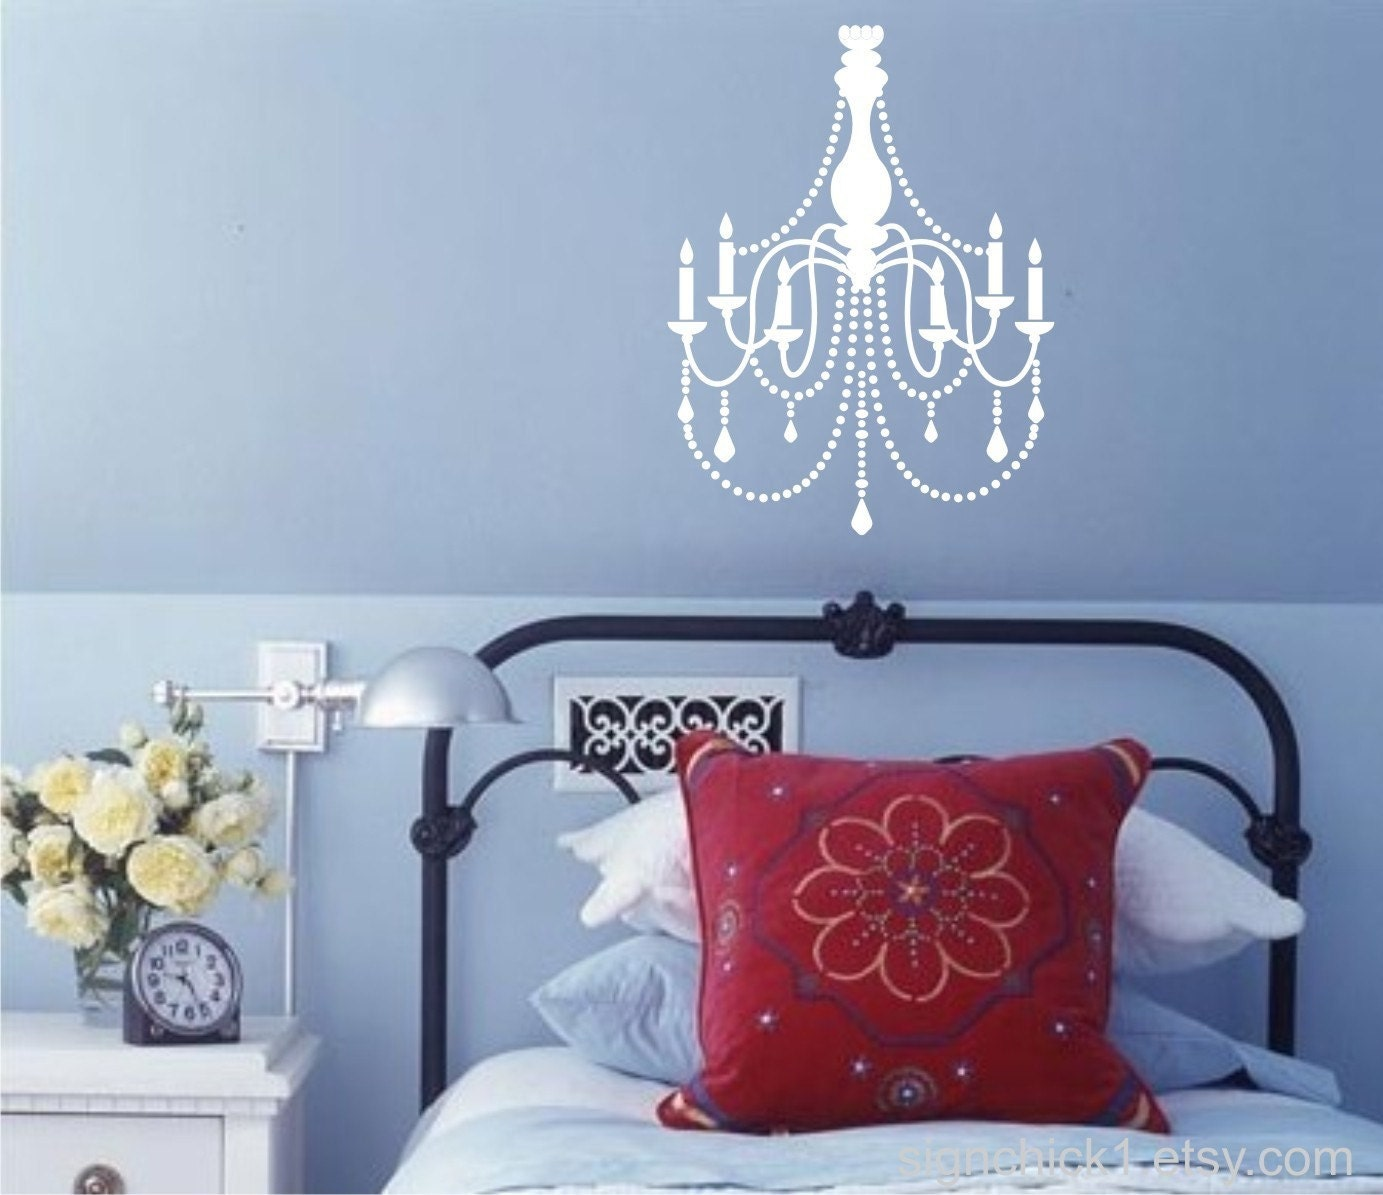 Chandelier Wall Decal dorm room decor by FairyDustDecals  ~ 170956_Etsy Dorm Room Ideas